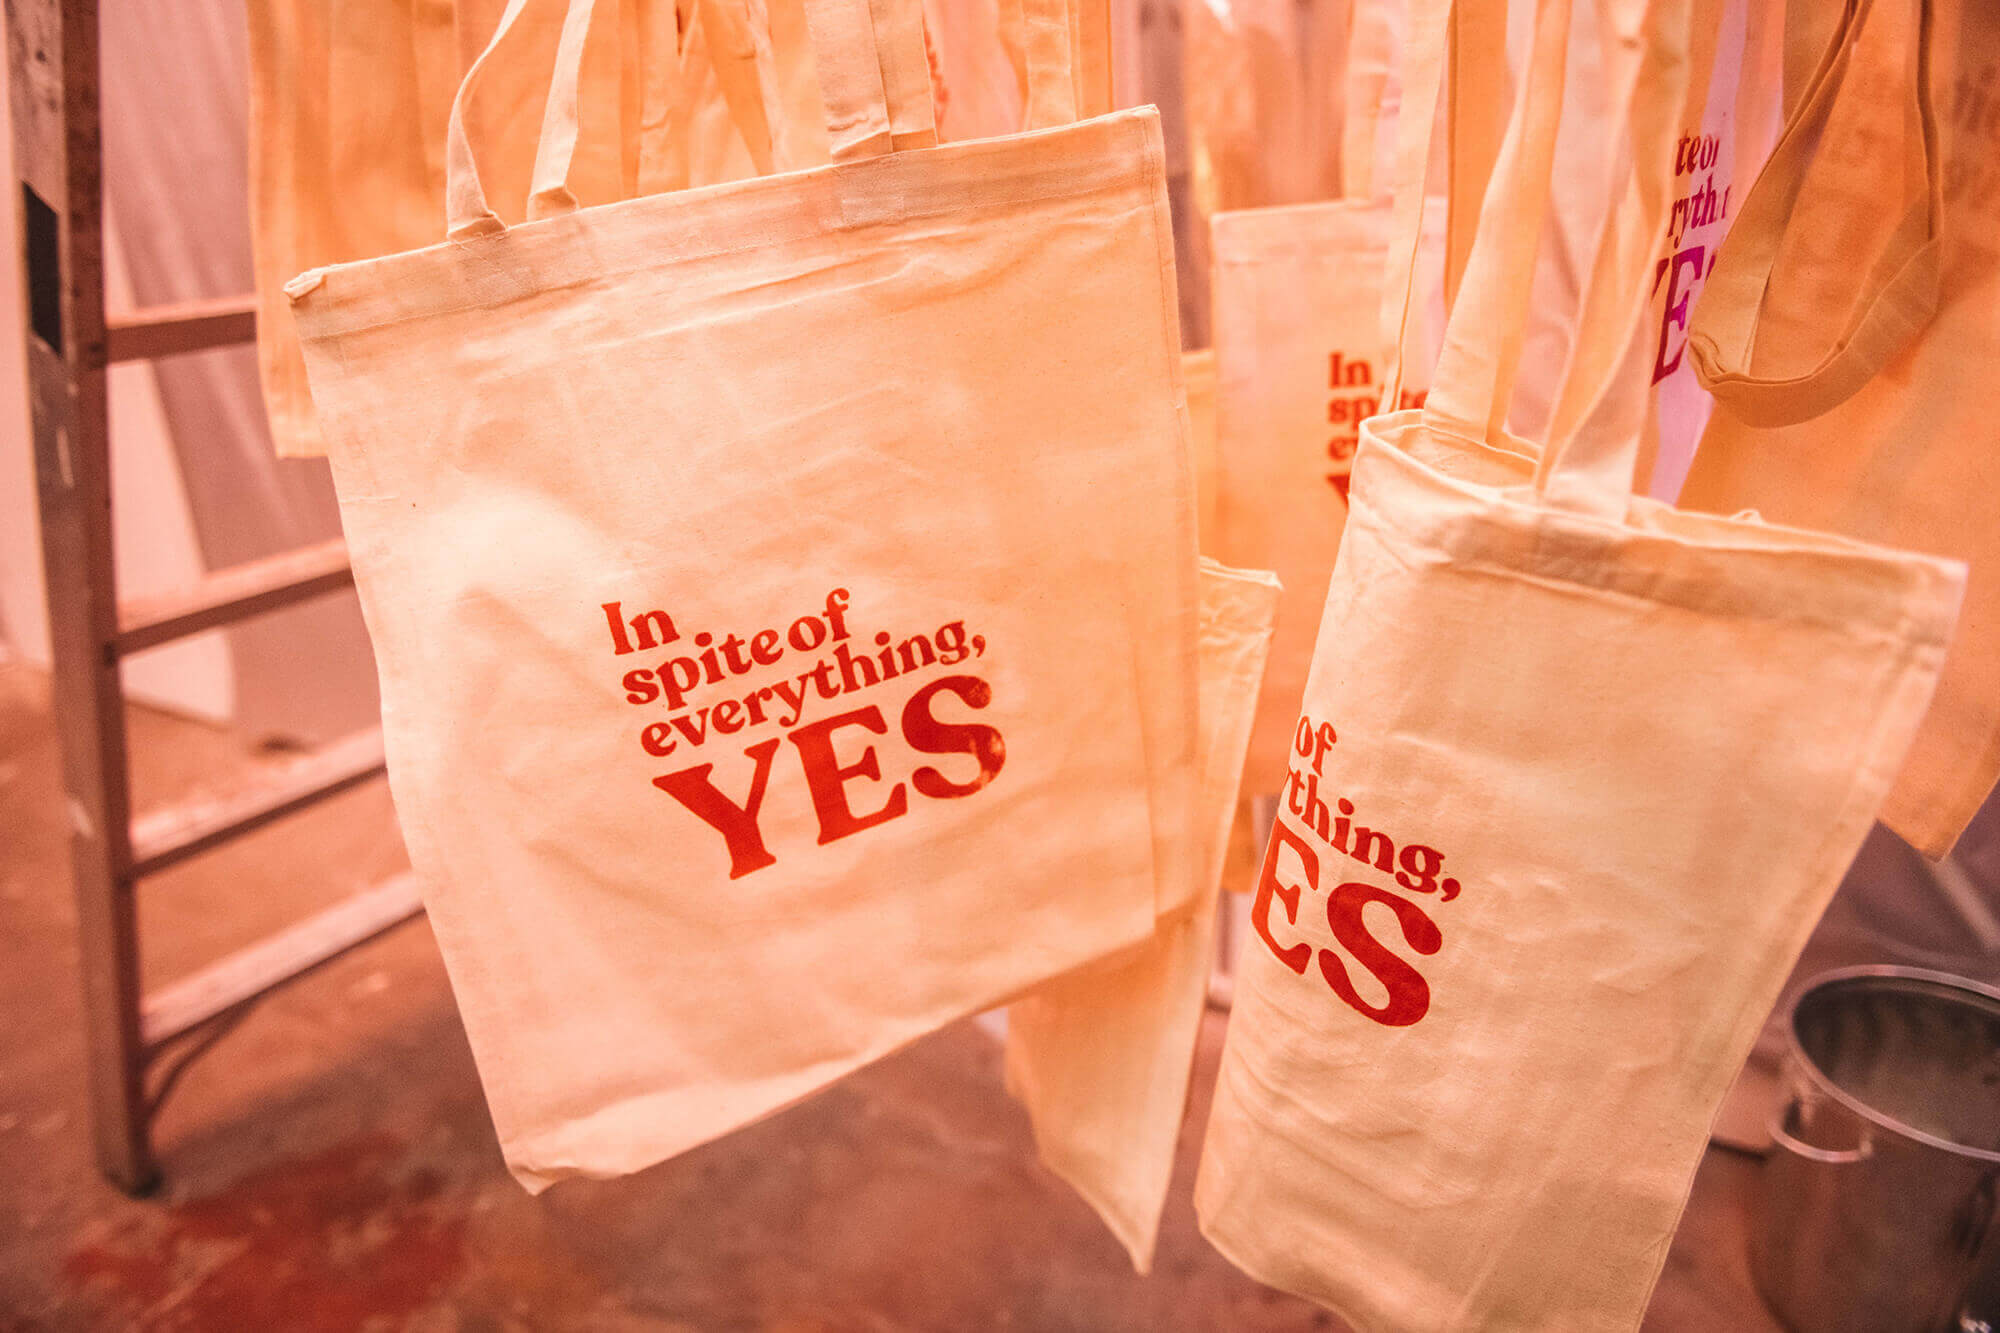 Tote bags at City Night's Party at the Silver Factory, 1966